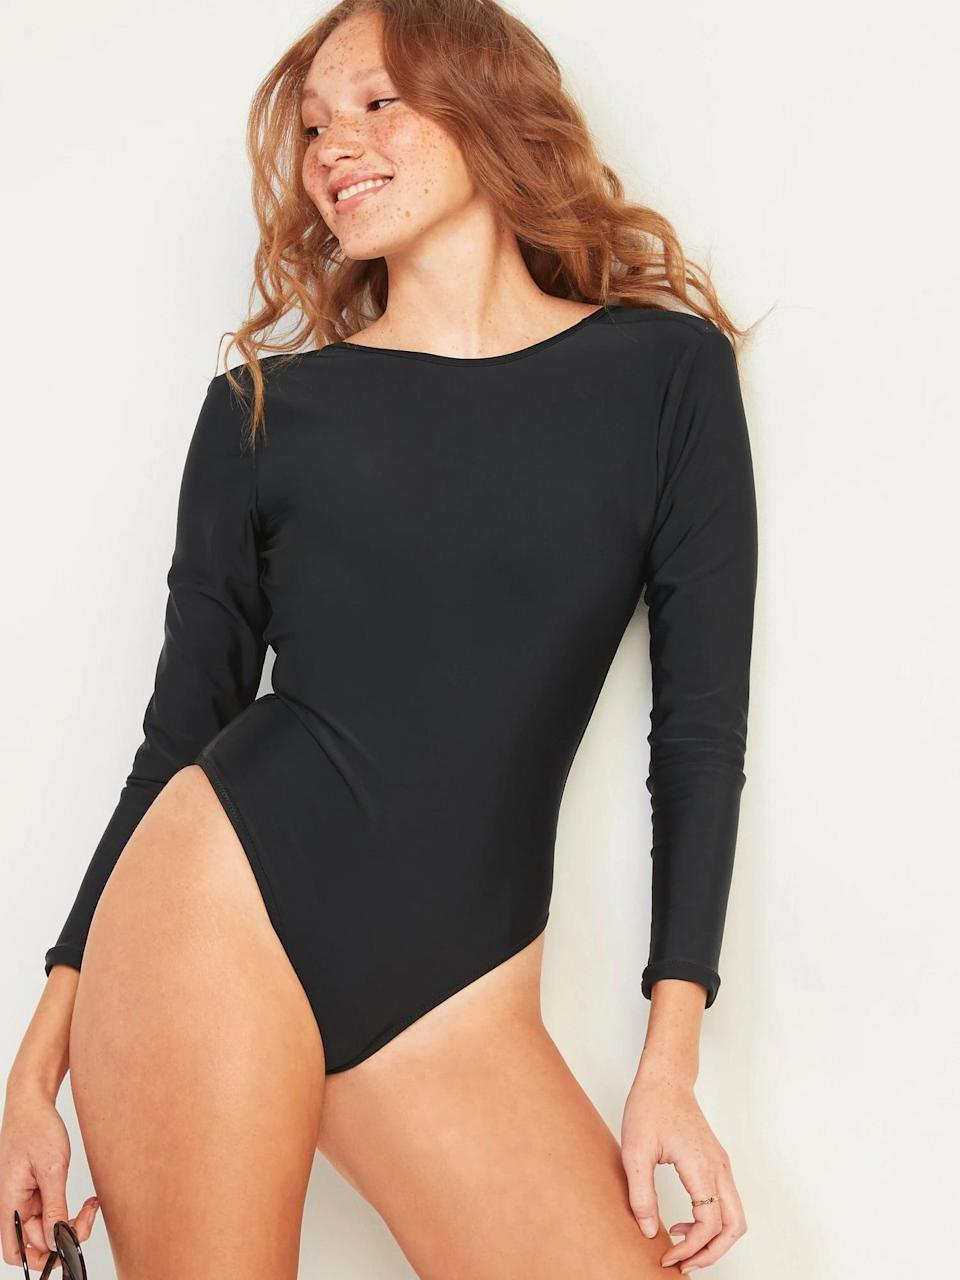 <p>If you're looking for something a little more covered, go with this <span>Old Navy Rashguard Long-Sleeve One-Piece Swimsuit</span> ($40, originally $50). It's also a great option if you want to play in the waves.</p>